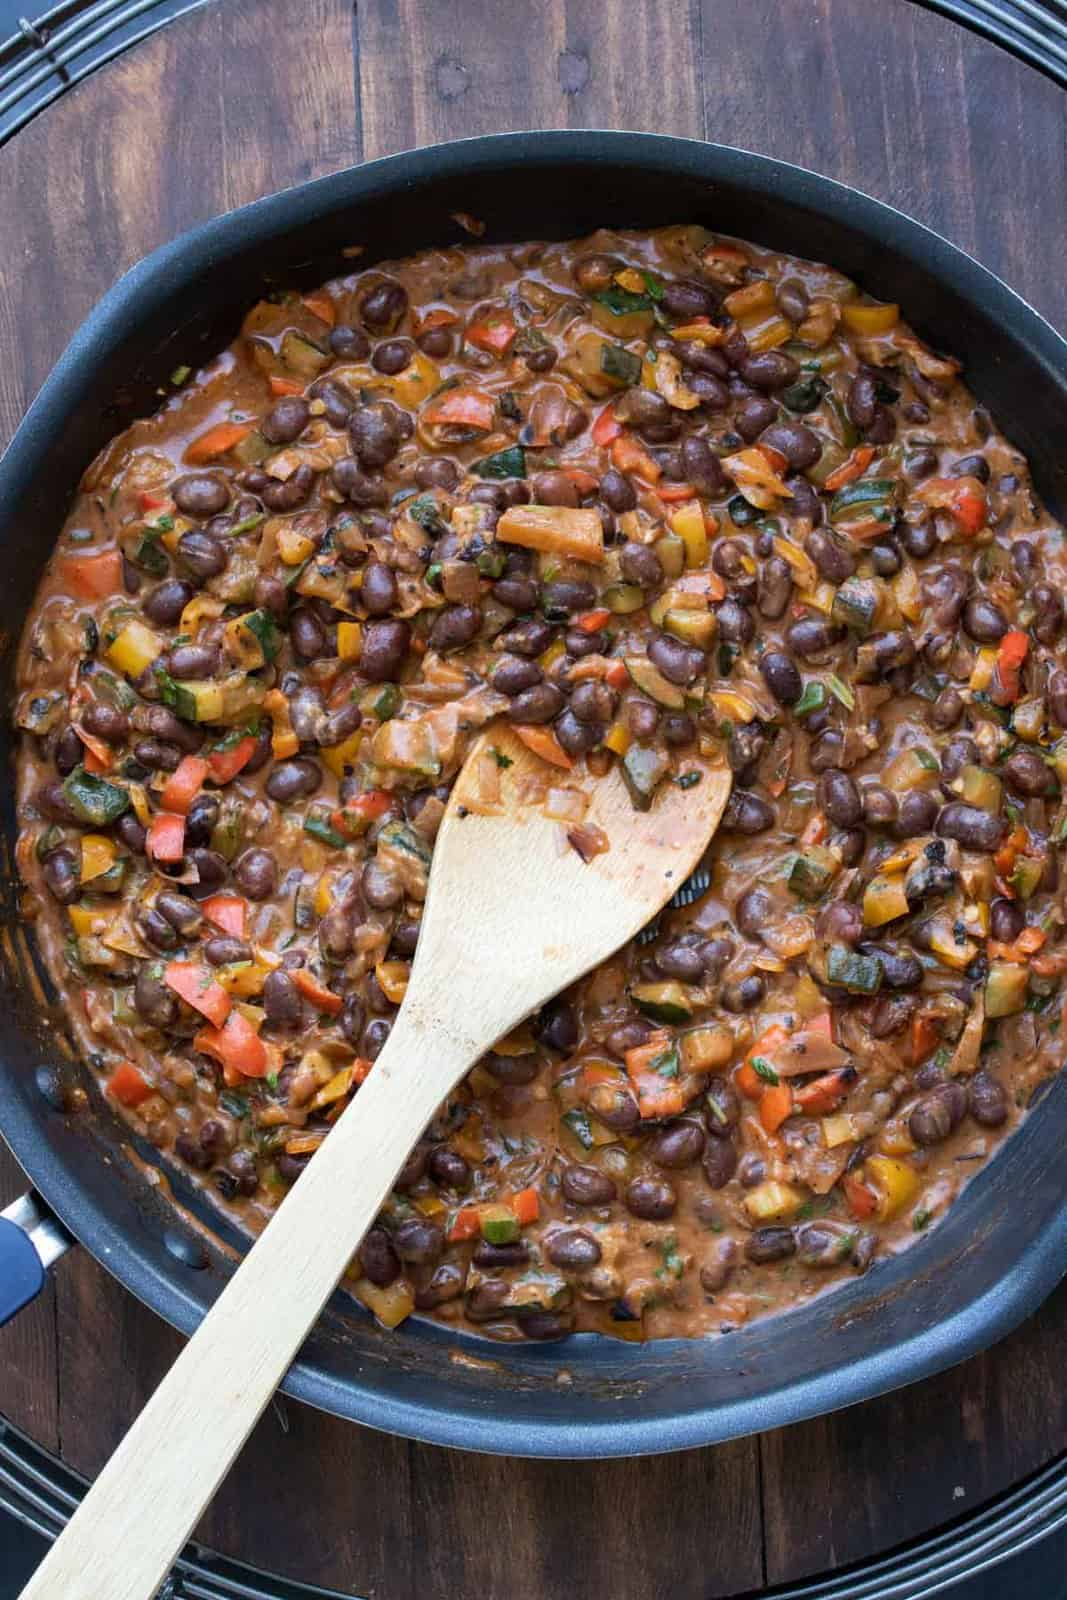 Wooden spoon mixing black bean mixture with veggies in a pan